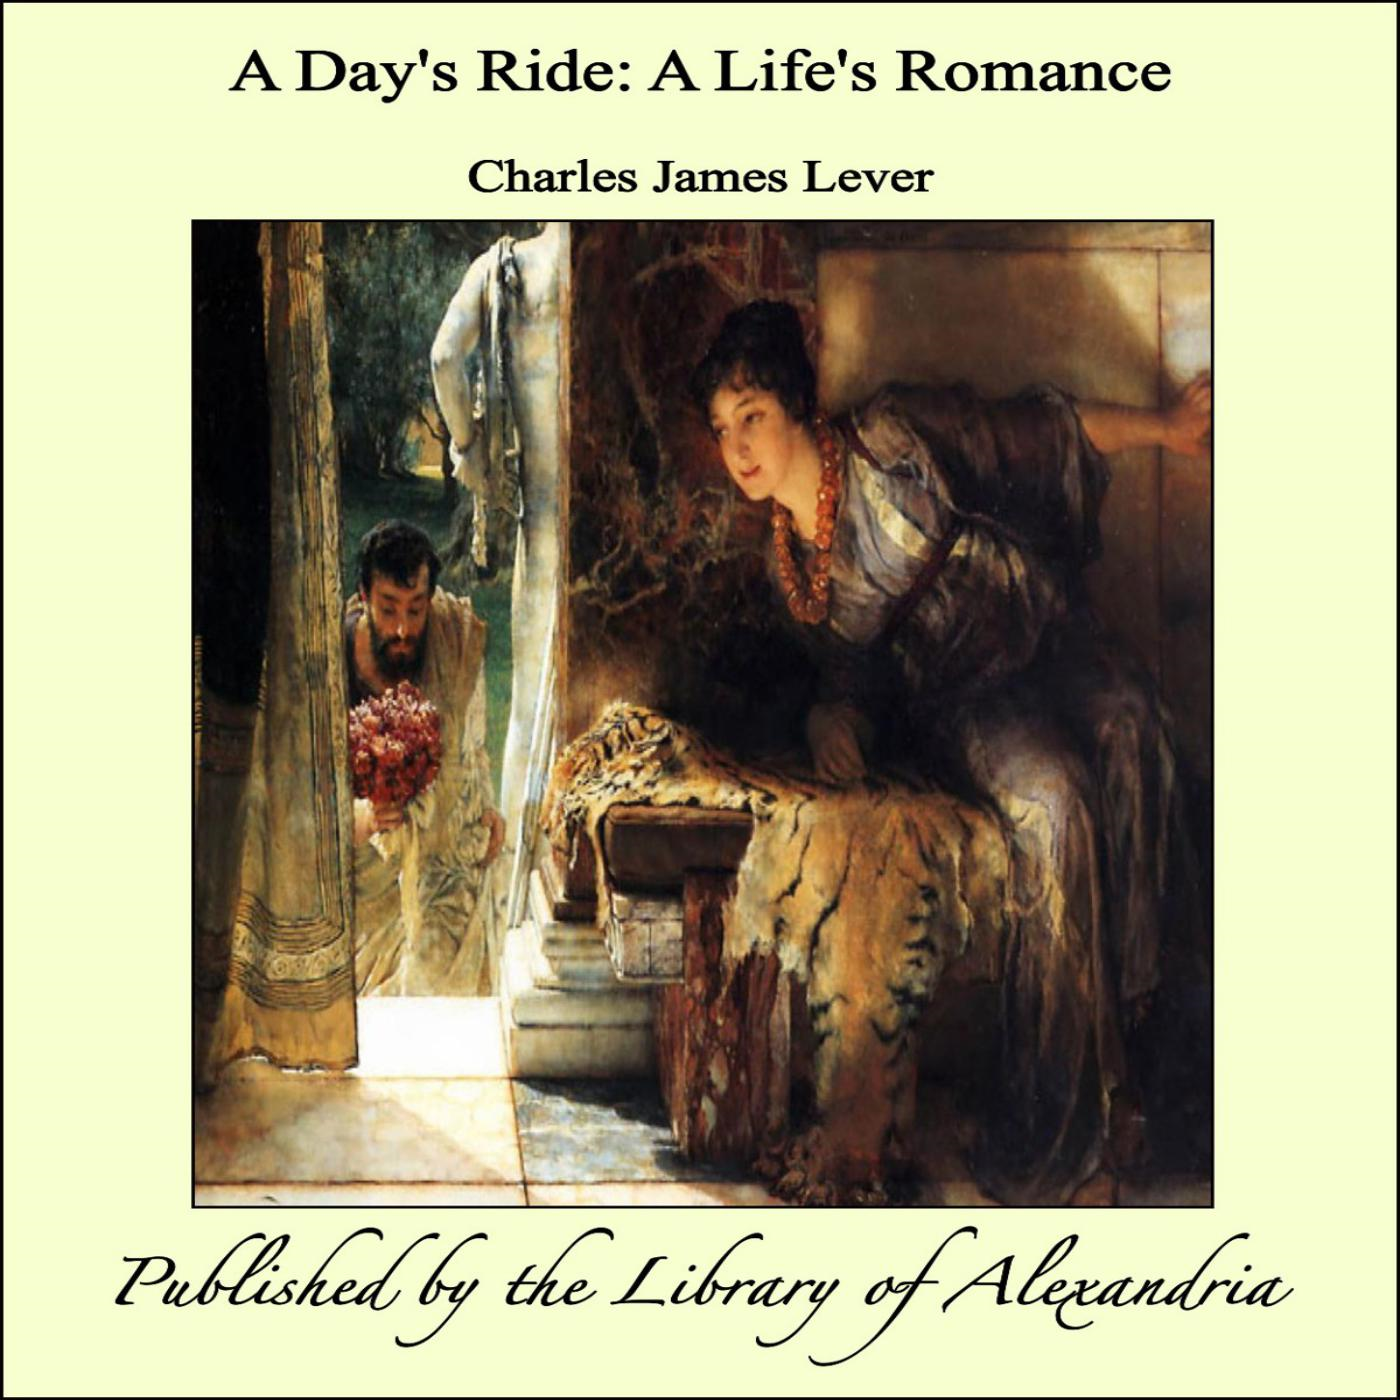 Charles James Lever - A Day's Ride: A Life's Romance